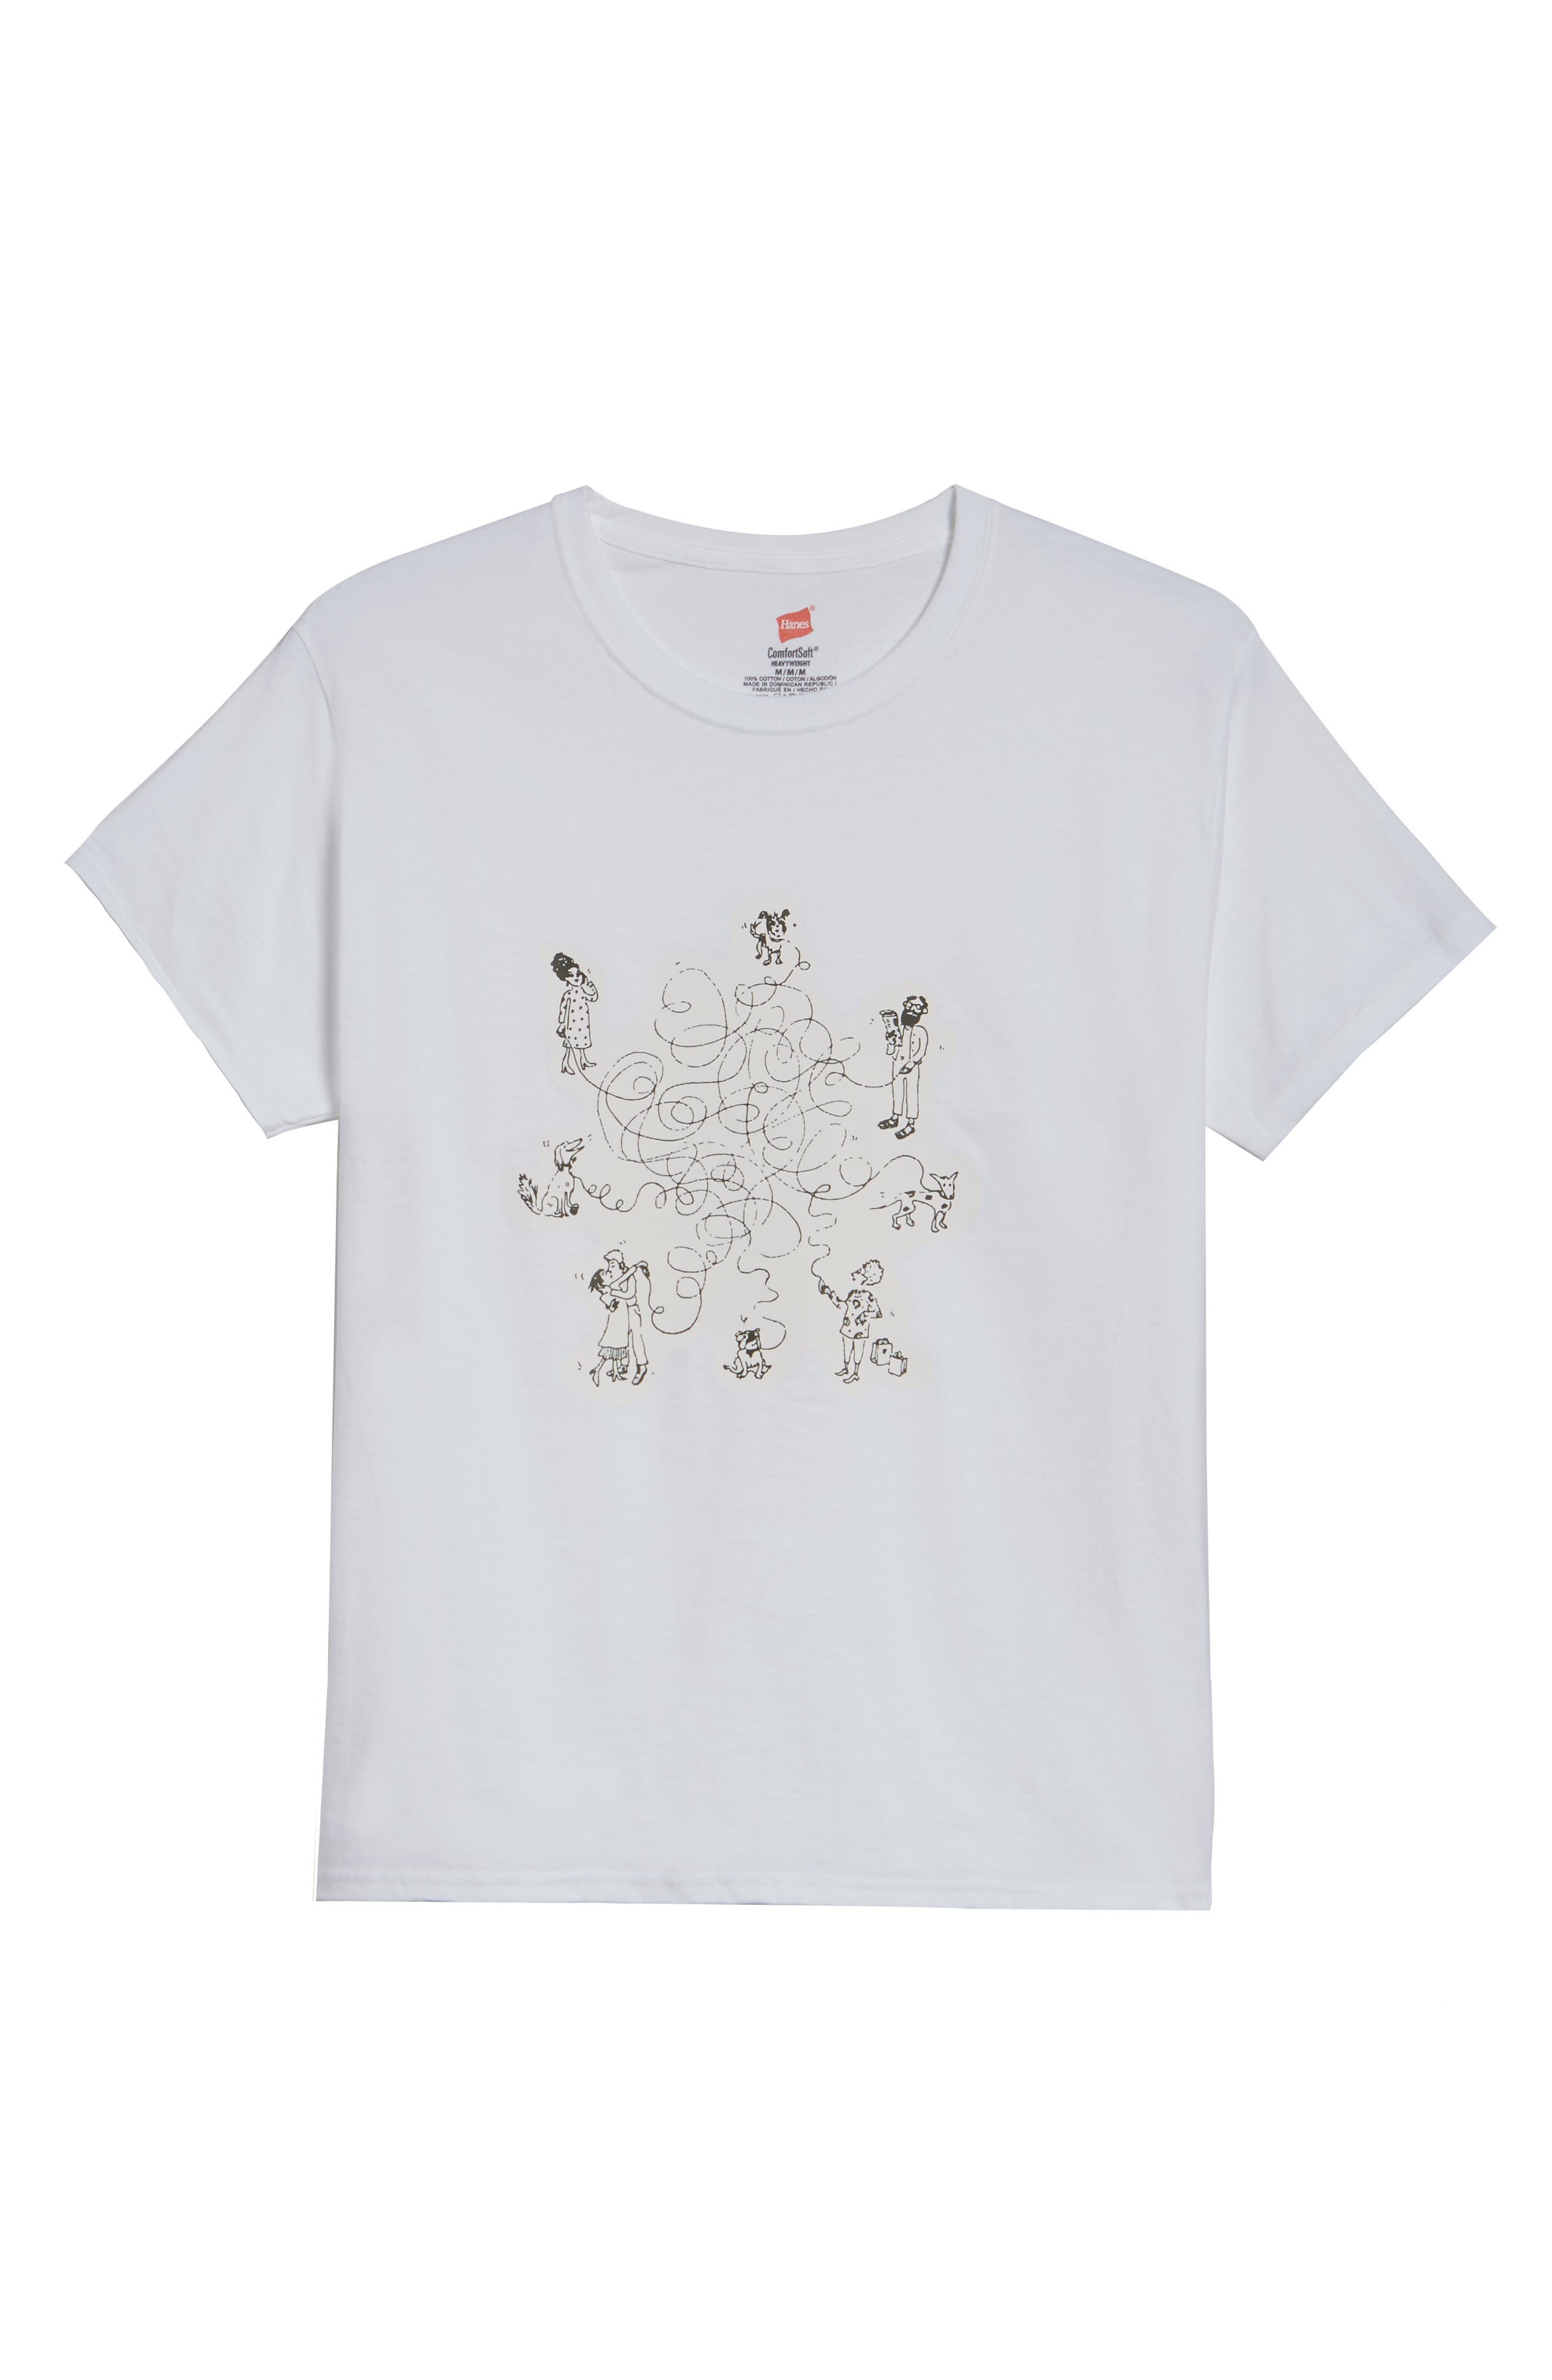 Joanna Avillez Tangled Dog Walker Group Tee